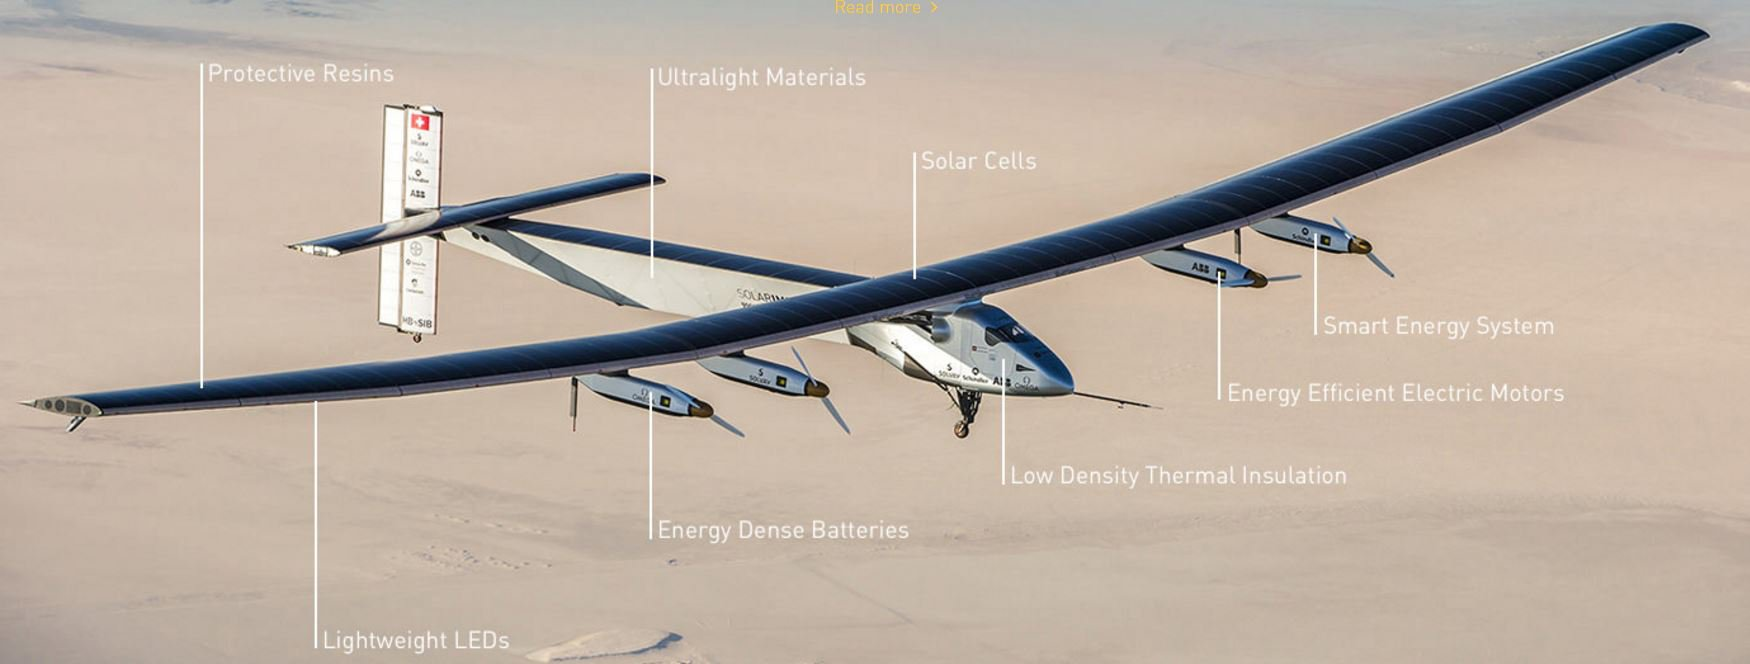 Solar-plane-first-global-trip-BODY-Full plane layout.JPG